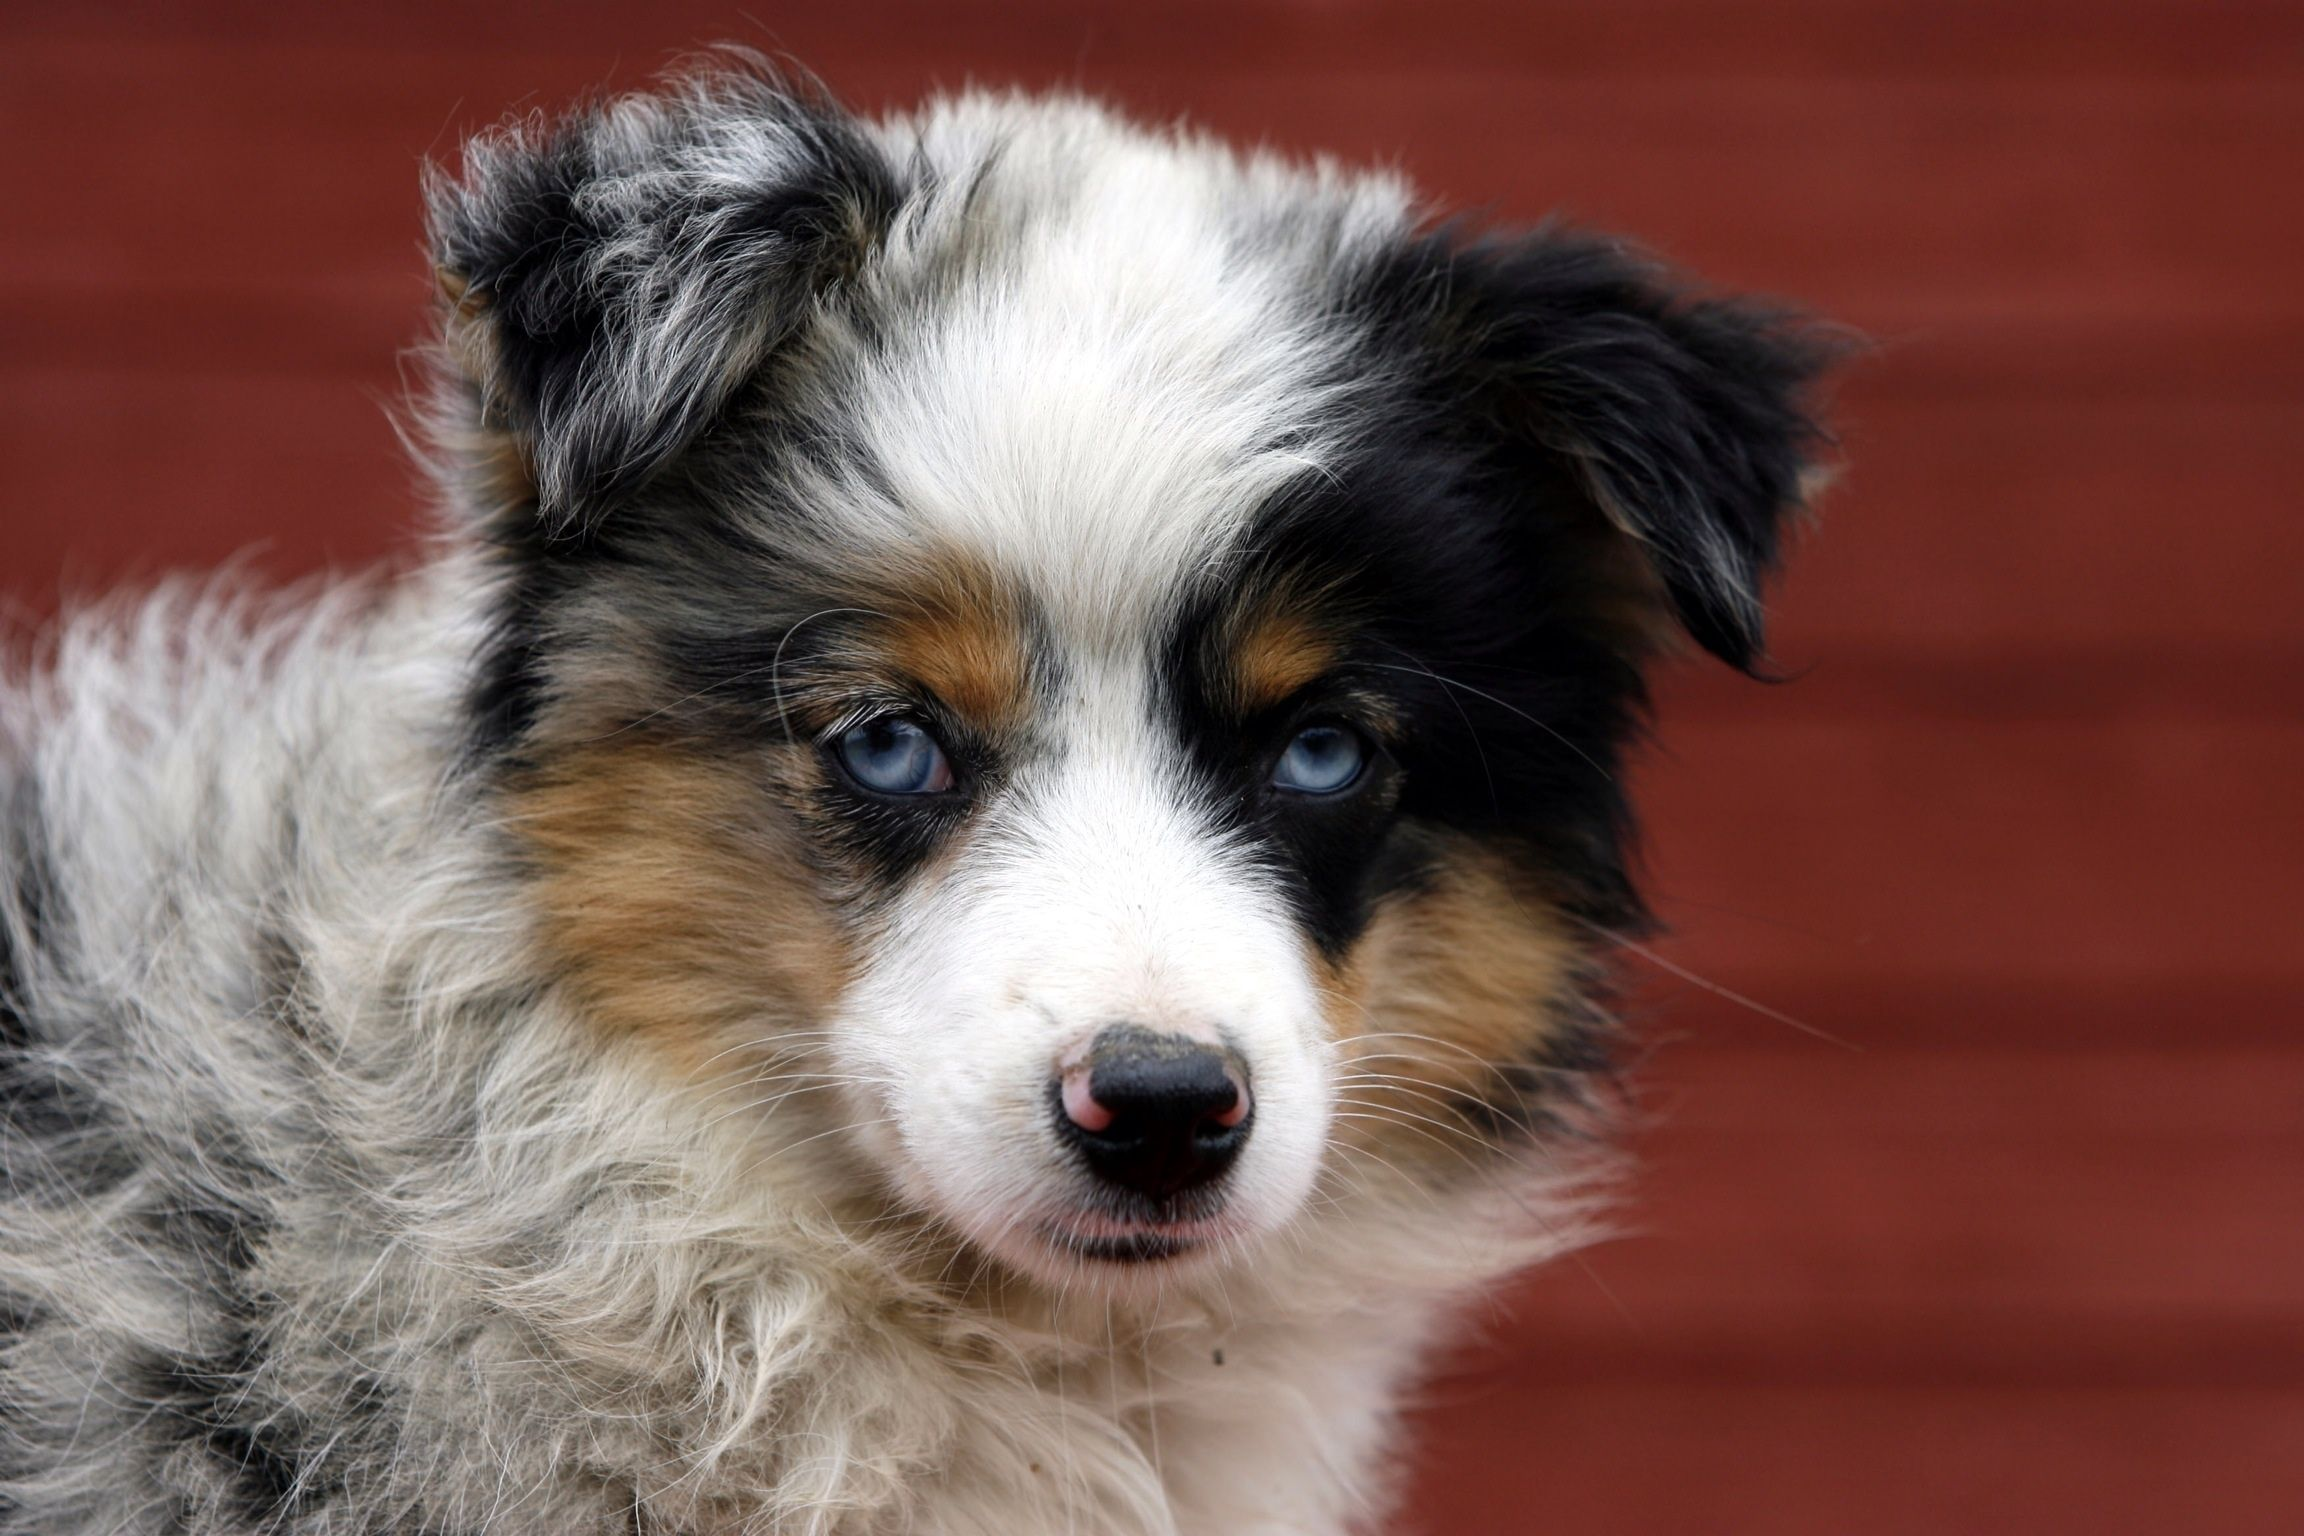 Beartooth Toy Aussies Specialize In Raising Quality Small Toy Australian Shepherds That Have A Great Person Toy Australian Shepherd Australian Shepherd Dog Cat